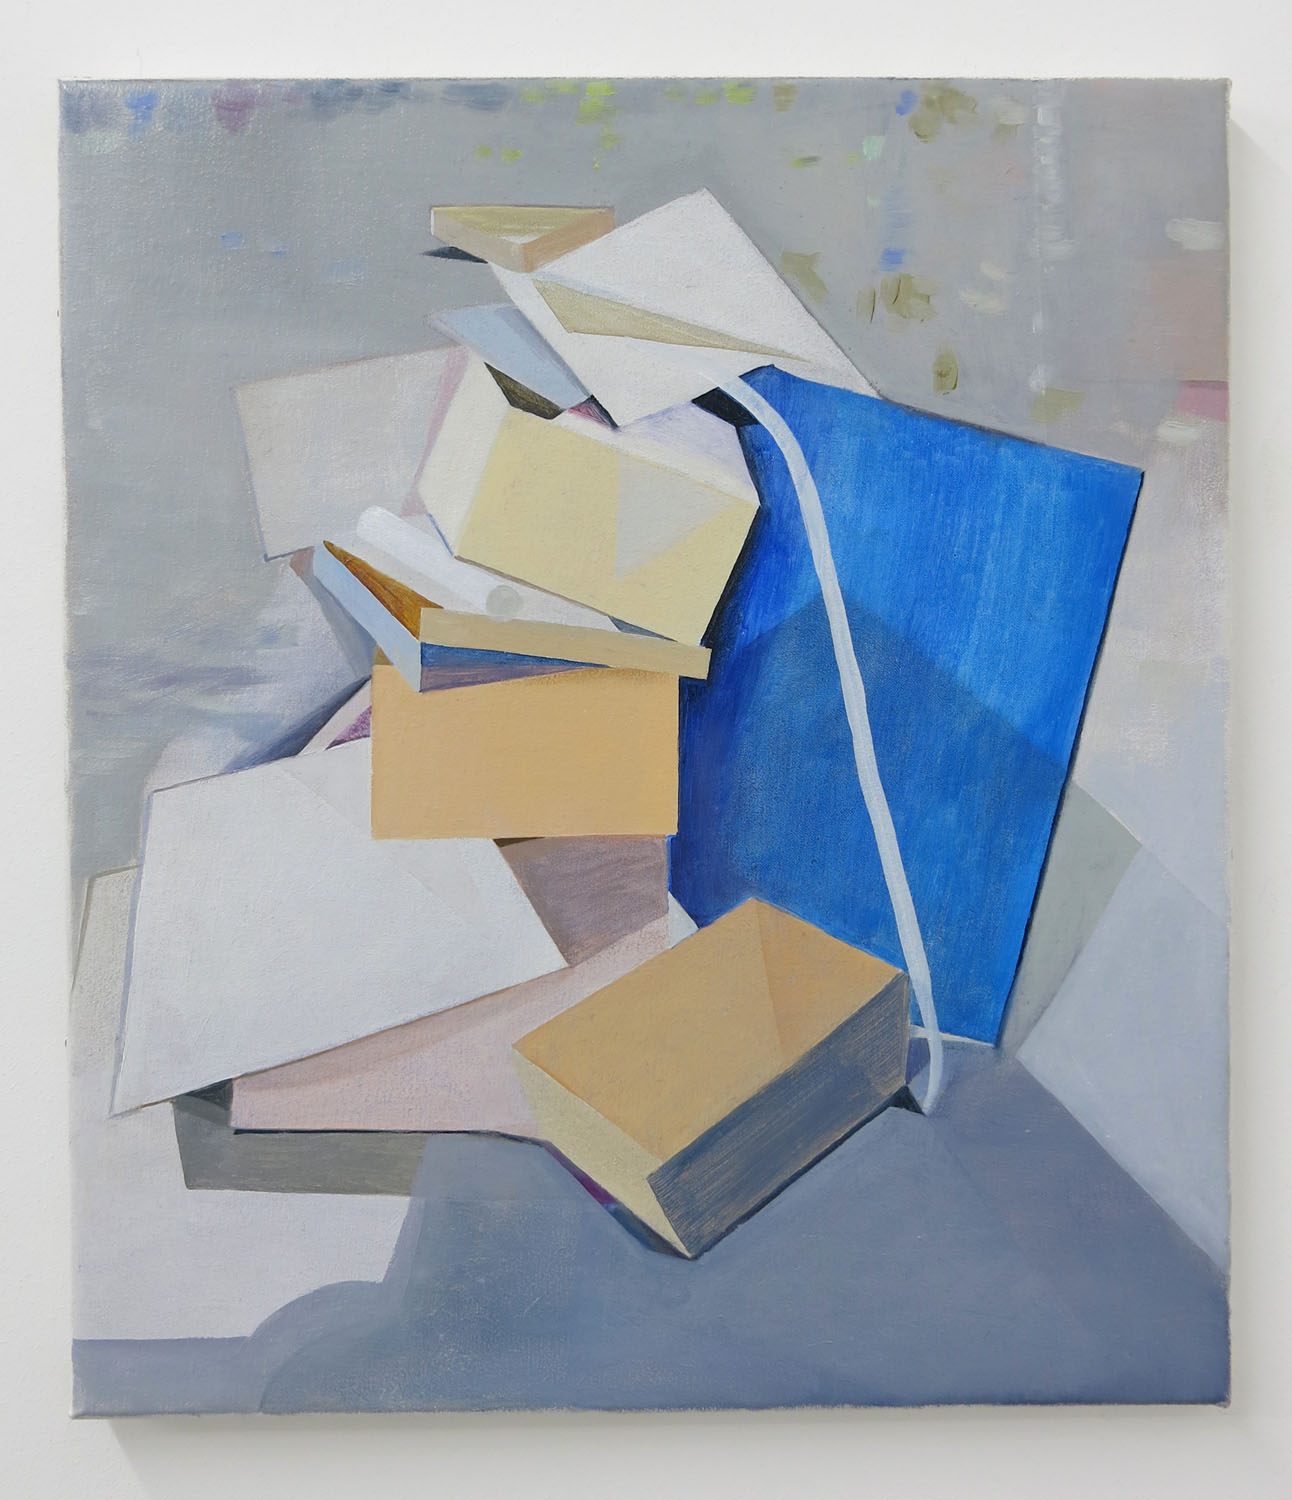 Blue Perspex    2013, oil on canvas, 40 x 35cm